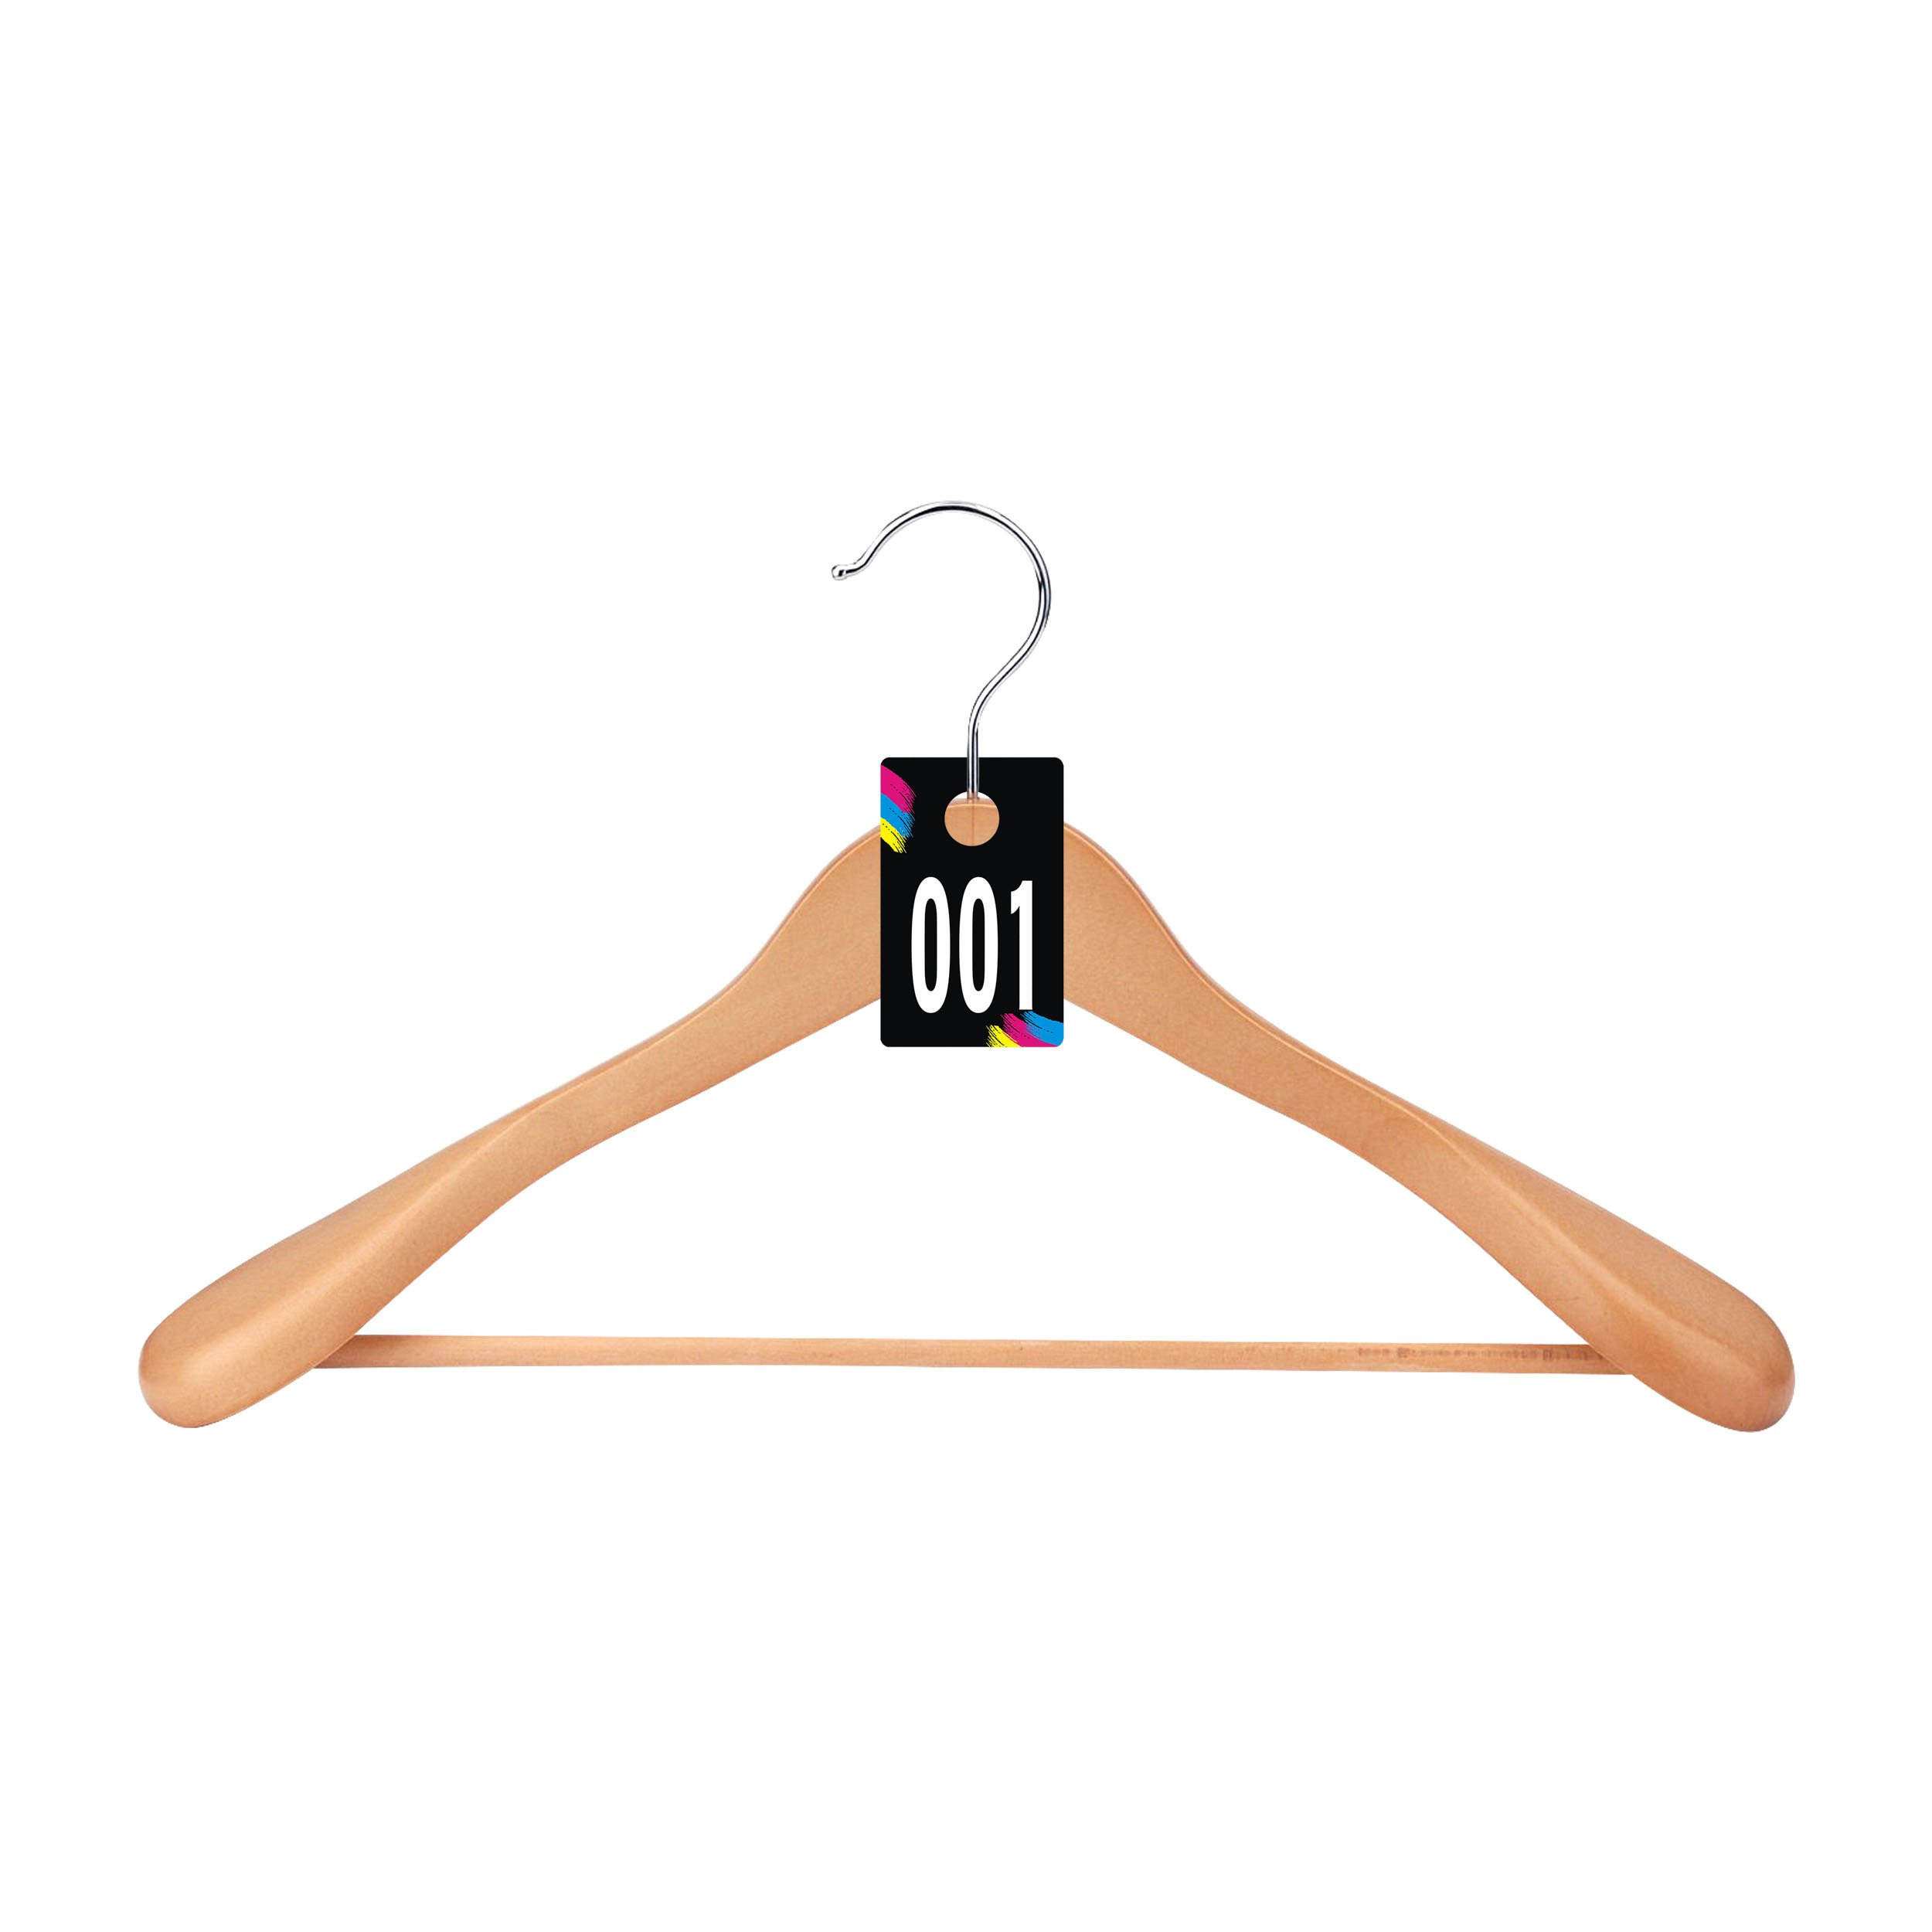 Coat Checks Numbers Zilpoo 200 Tags Number 001-200 Reusable Normal and Reverse Mirror Image Hanger Cards Live Sale Plastic Tags